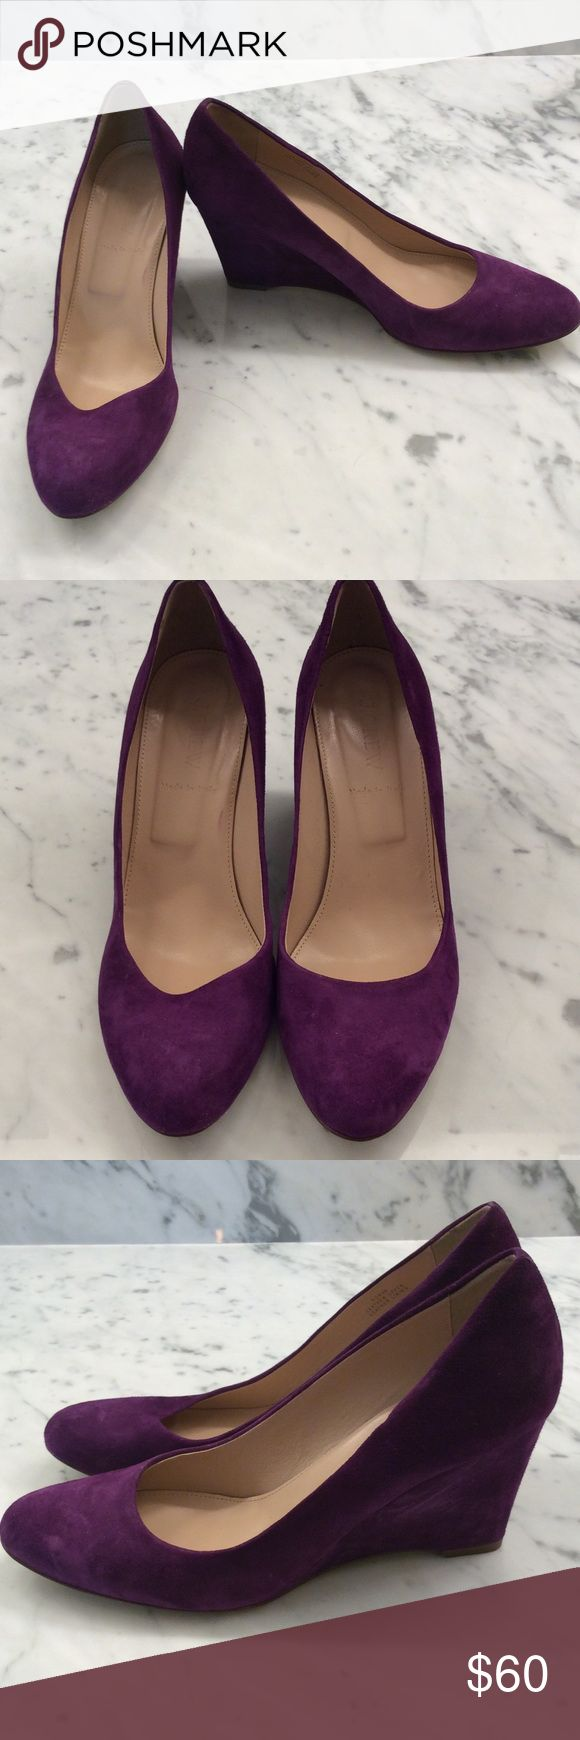 Purple suede J. Crew Wedges! Beautiful wedges are in like new condition - worn once to a wedding. In fun purple suede. Super comfortable yet eye-catching and gorgeous! Dust bag included. J. Crew Shoes Wedges